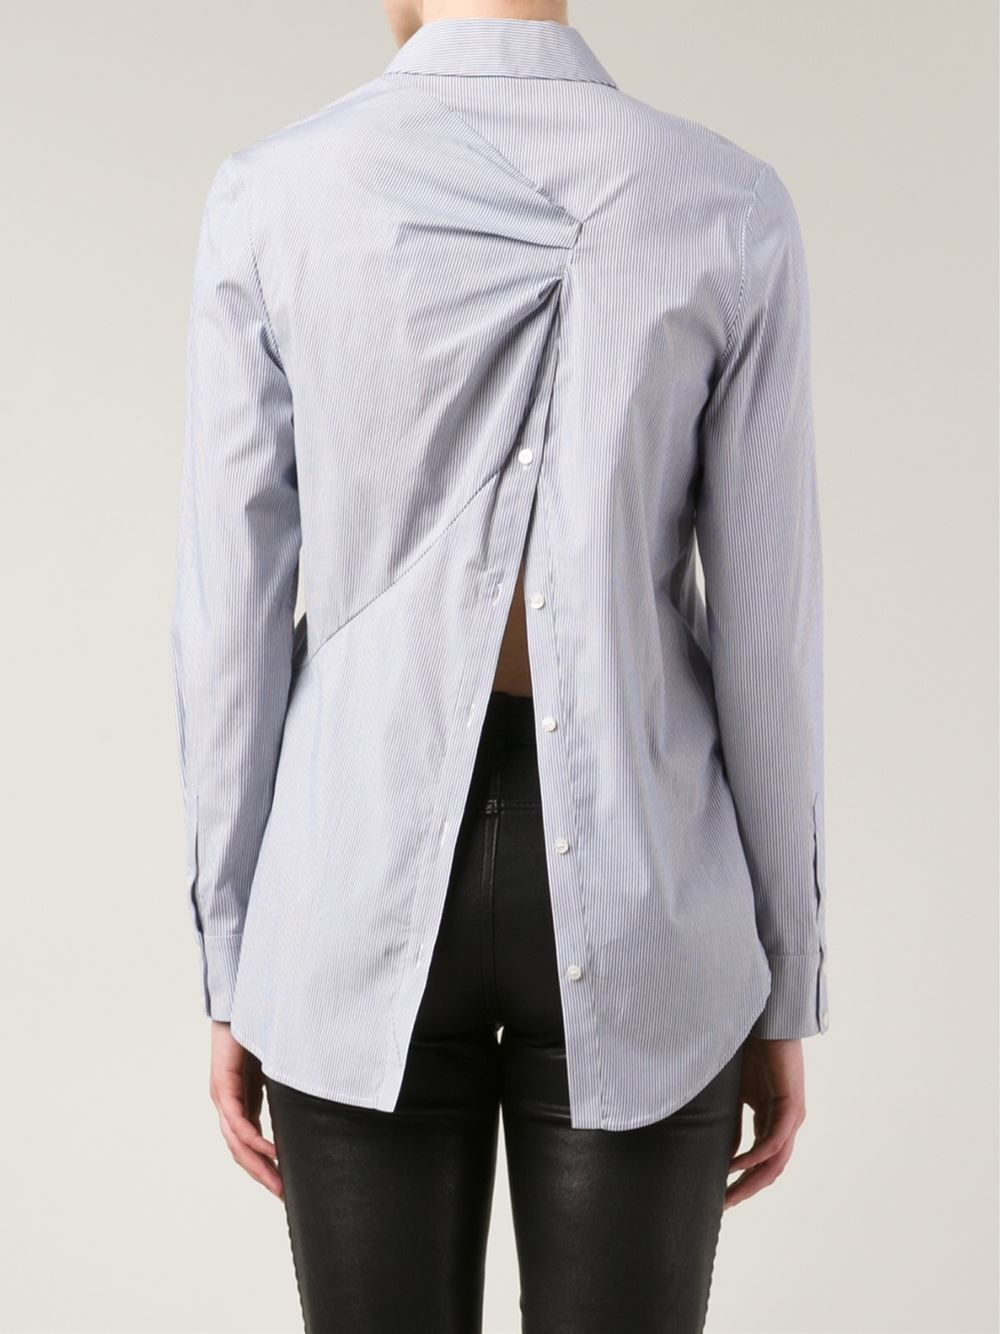 Thakoon Addition Striped Open Back Shirt - The Webster - Farfetch.com